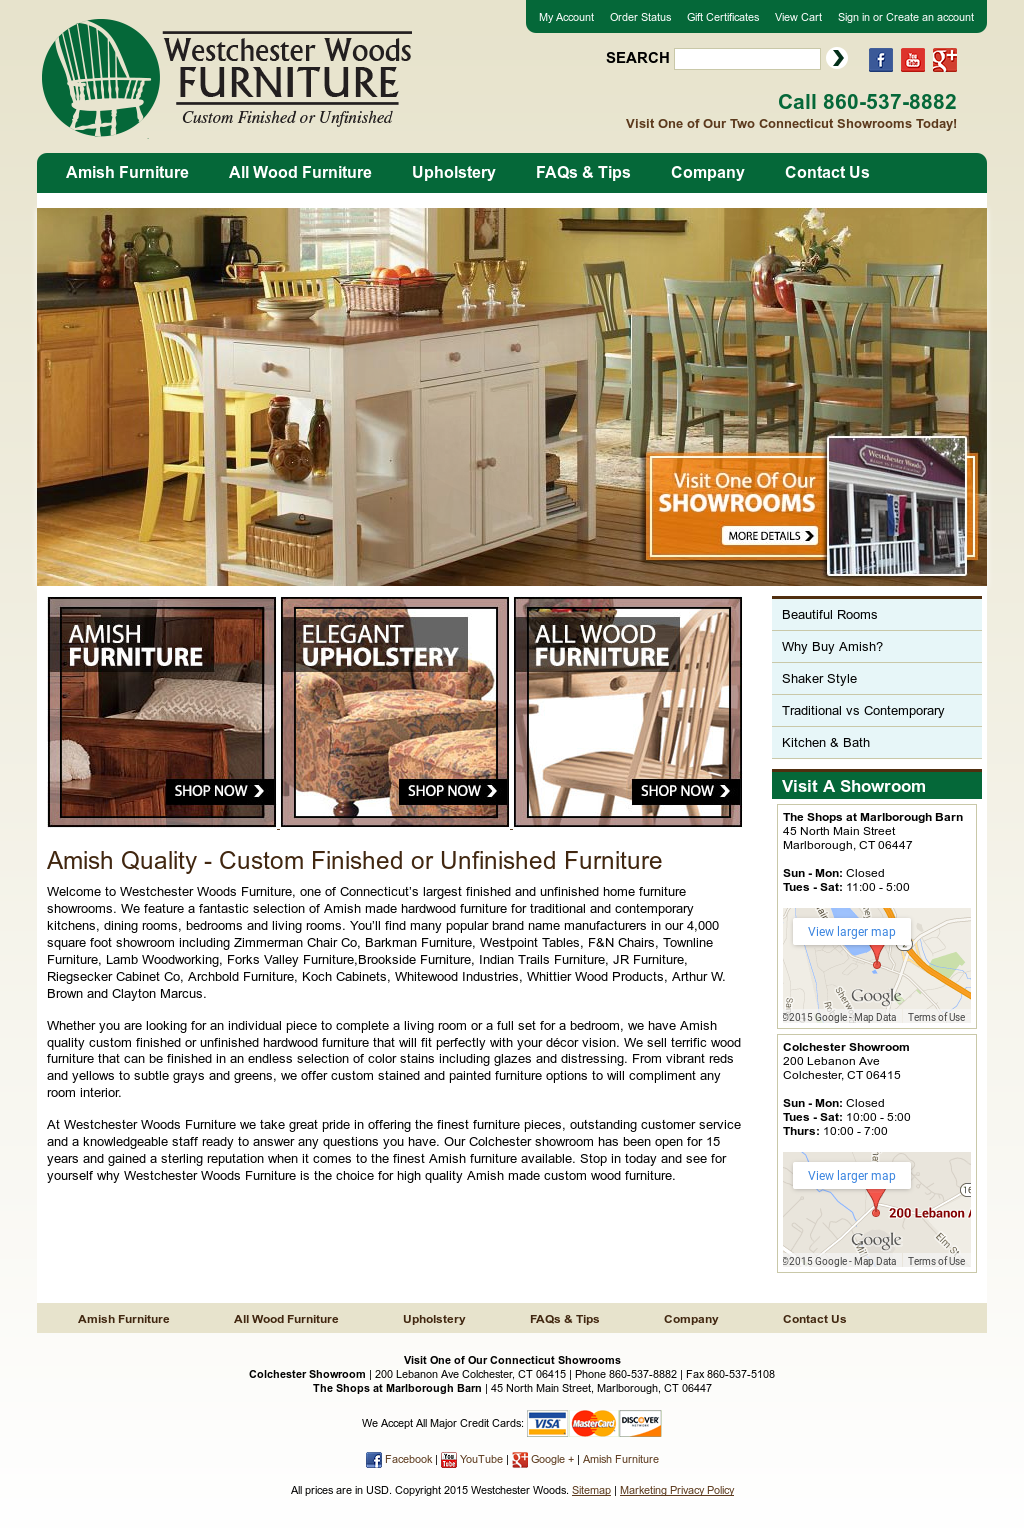 Etonnant Westchester Woods Furniture Competitors, Revenue And Employees   Owler  Company Profile